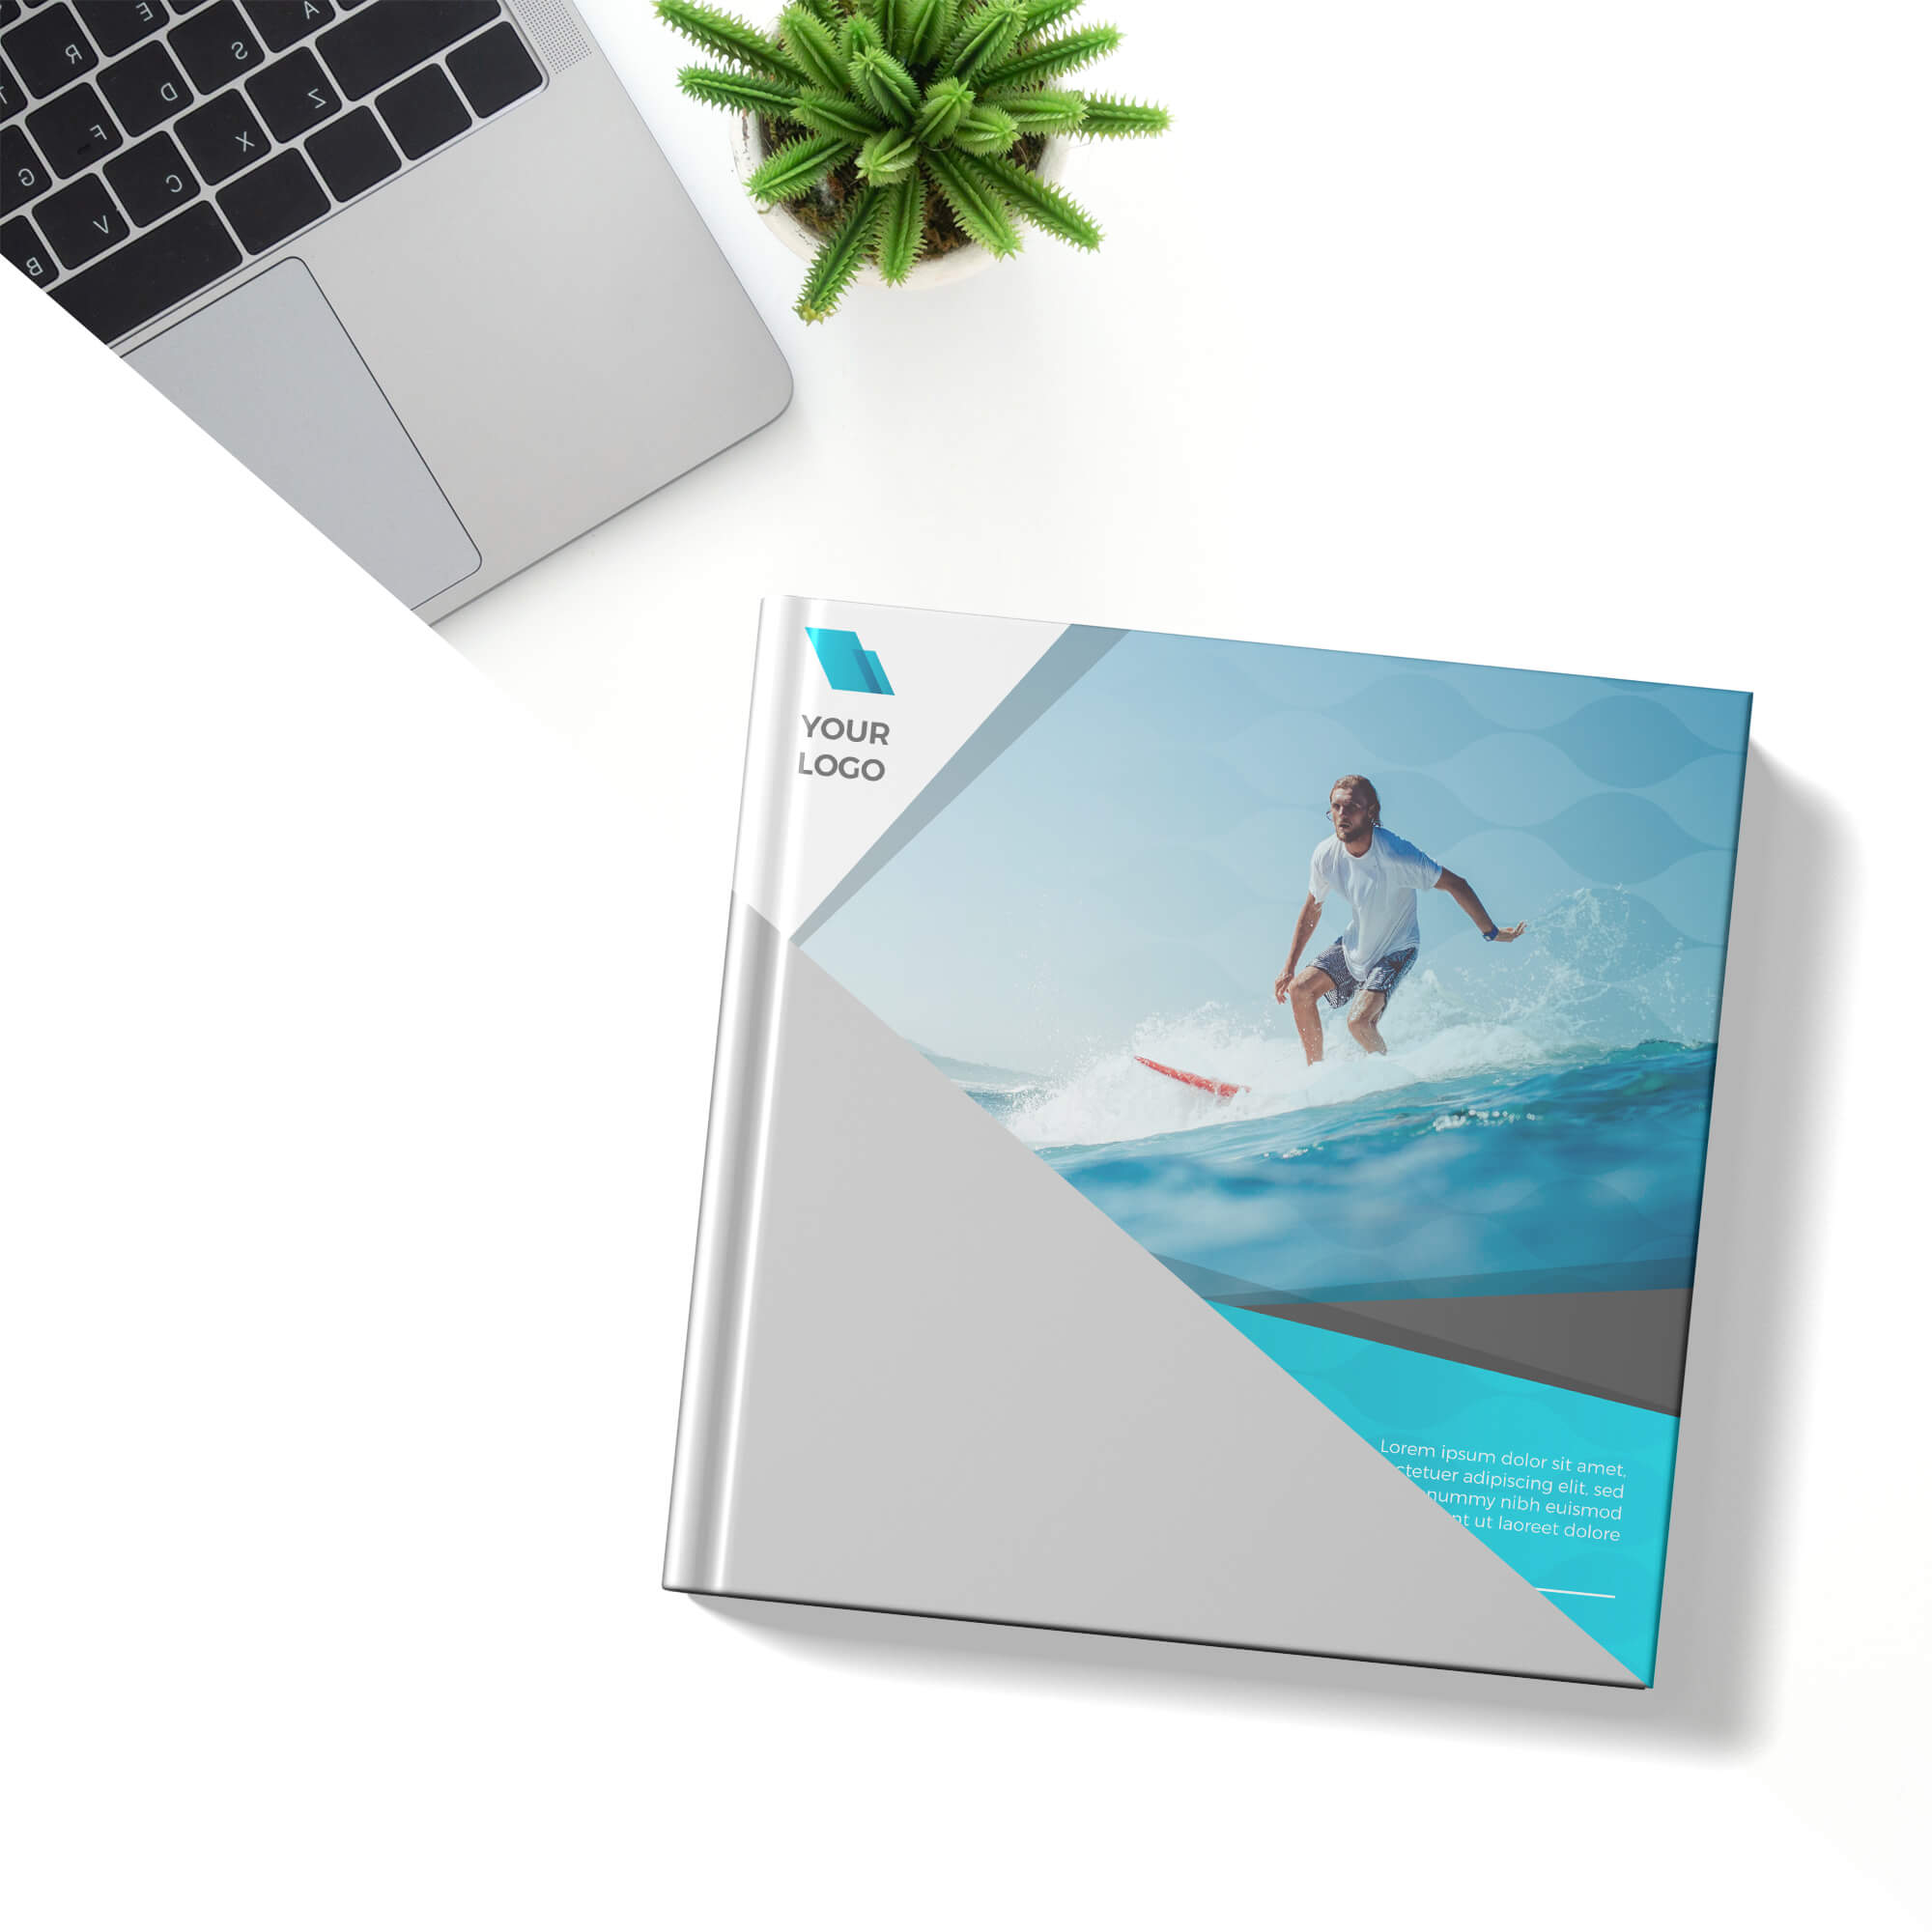 Editable Square Book Cover Mockup Free PSD Template